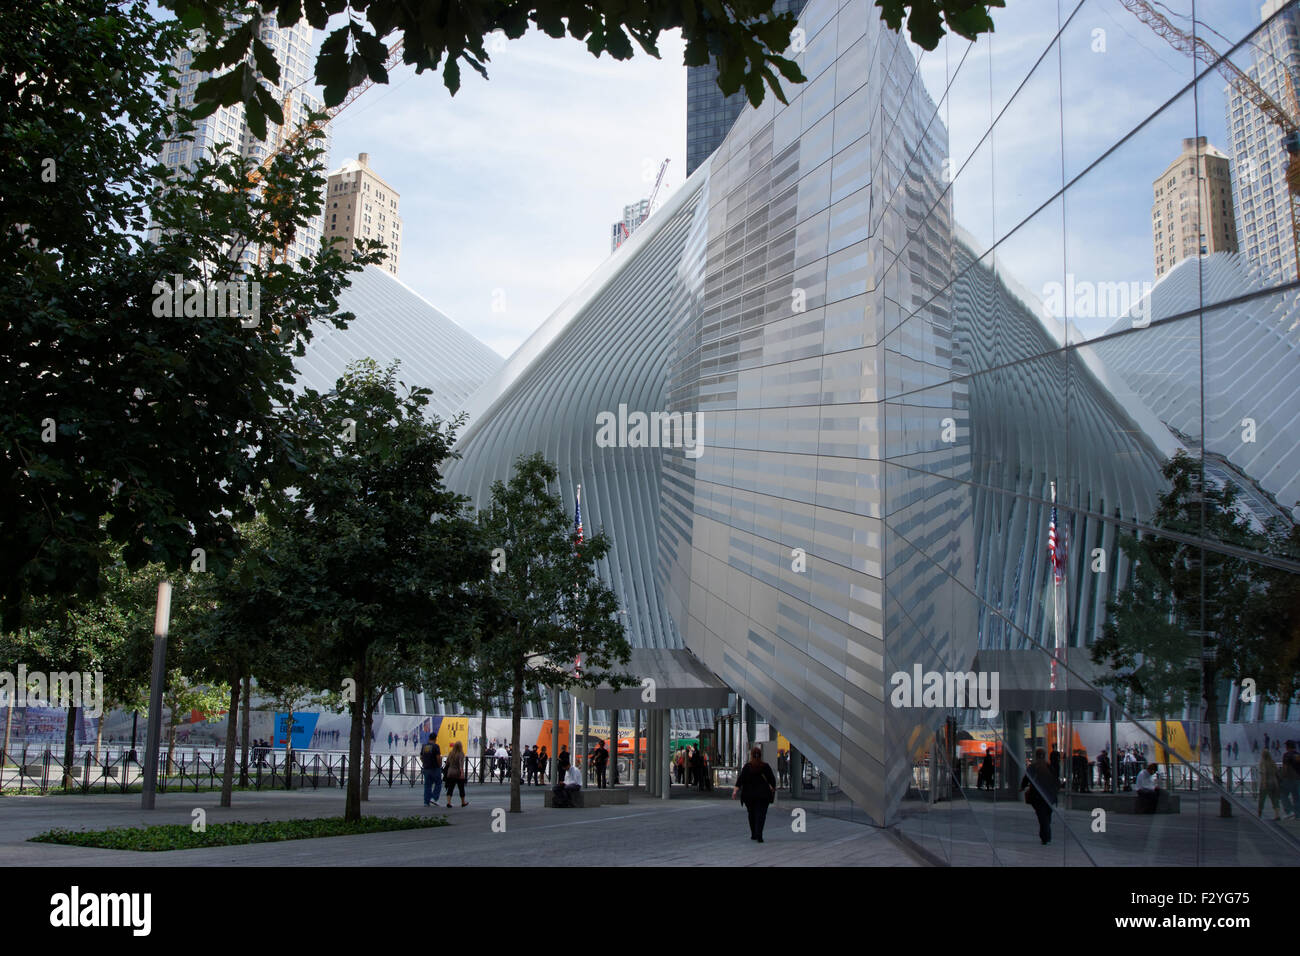 The transportation hub designed by Calatrava is reflected in the National September 11 Museum in Lower Manhattan, - Stock Image